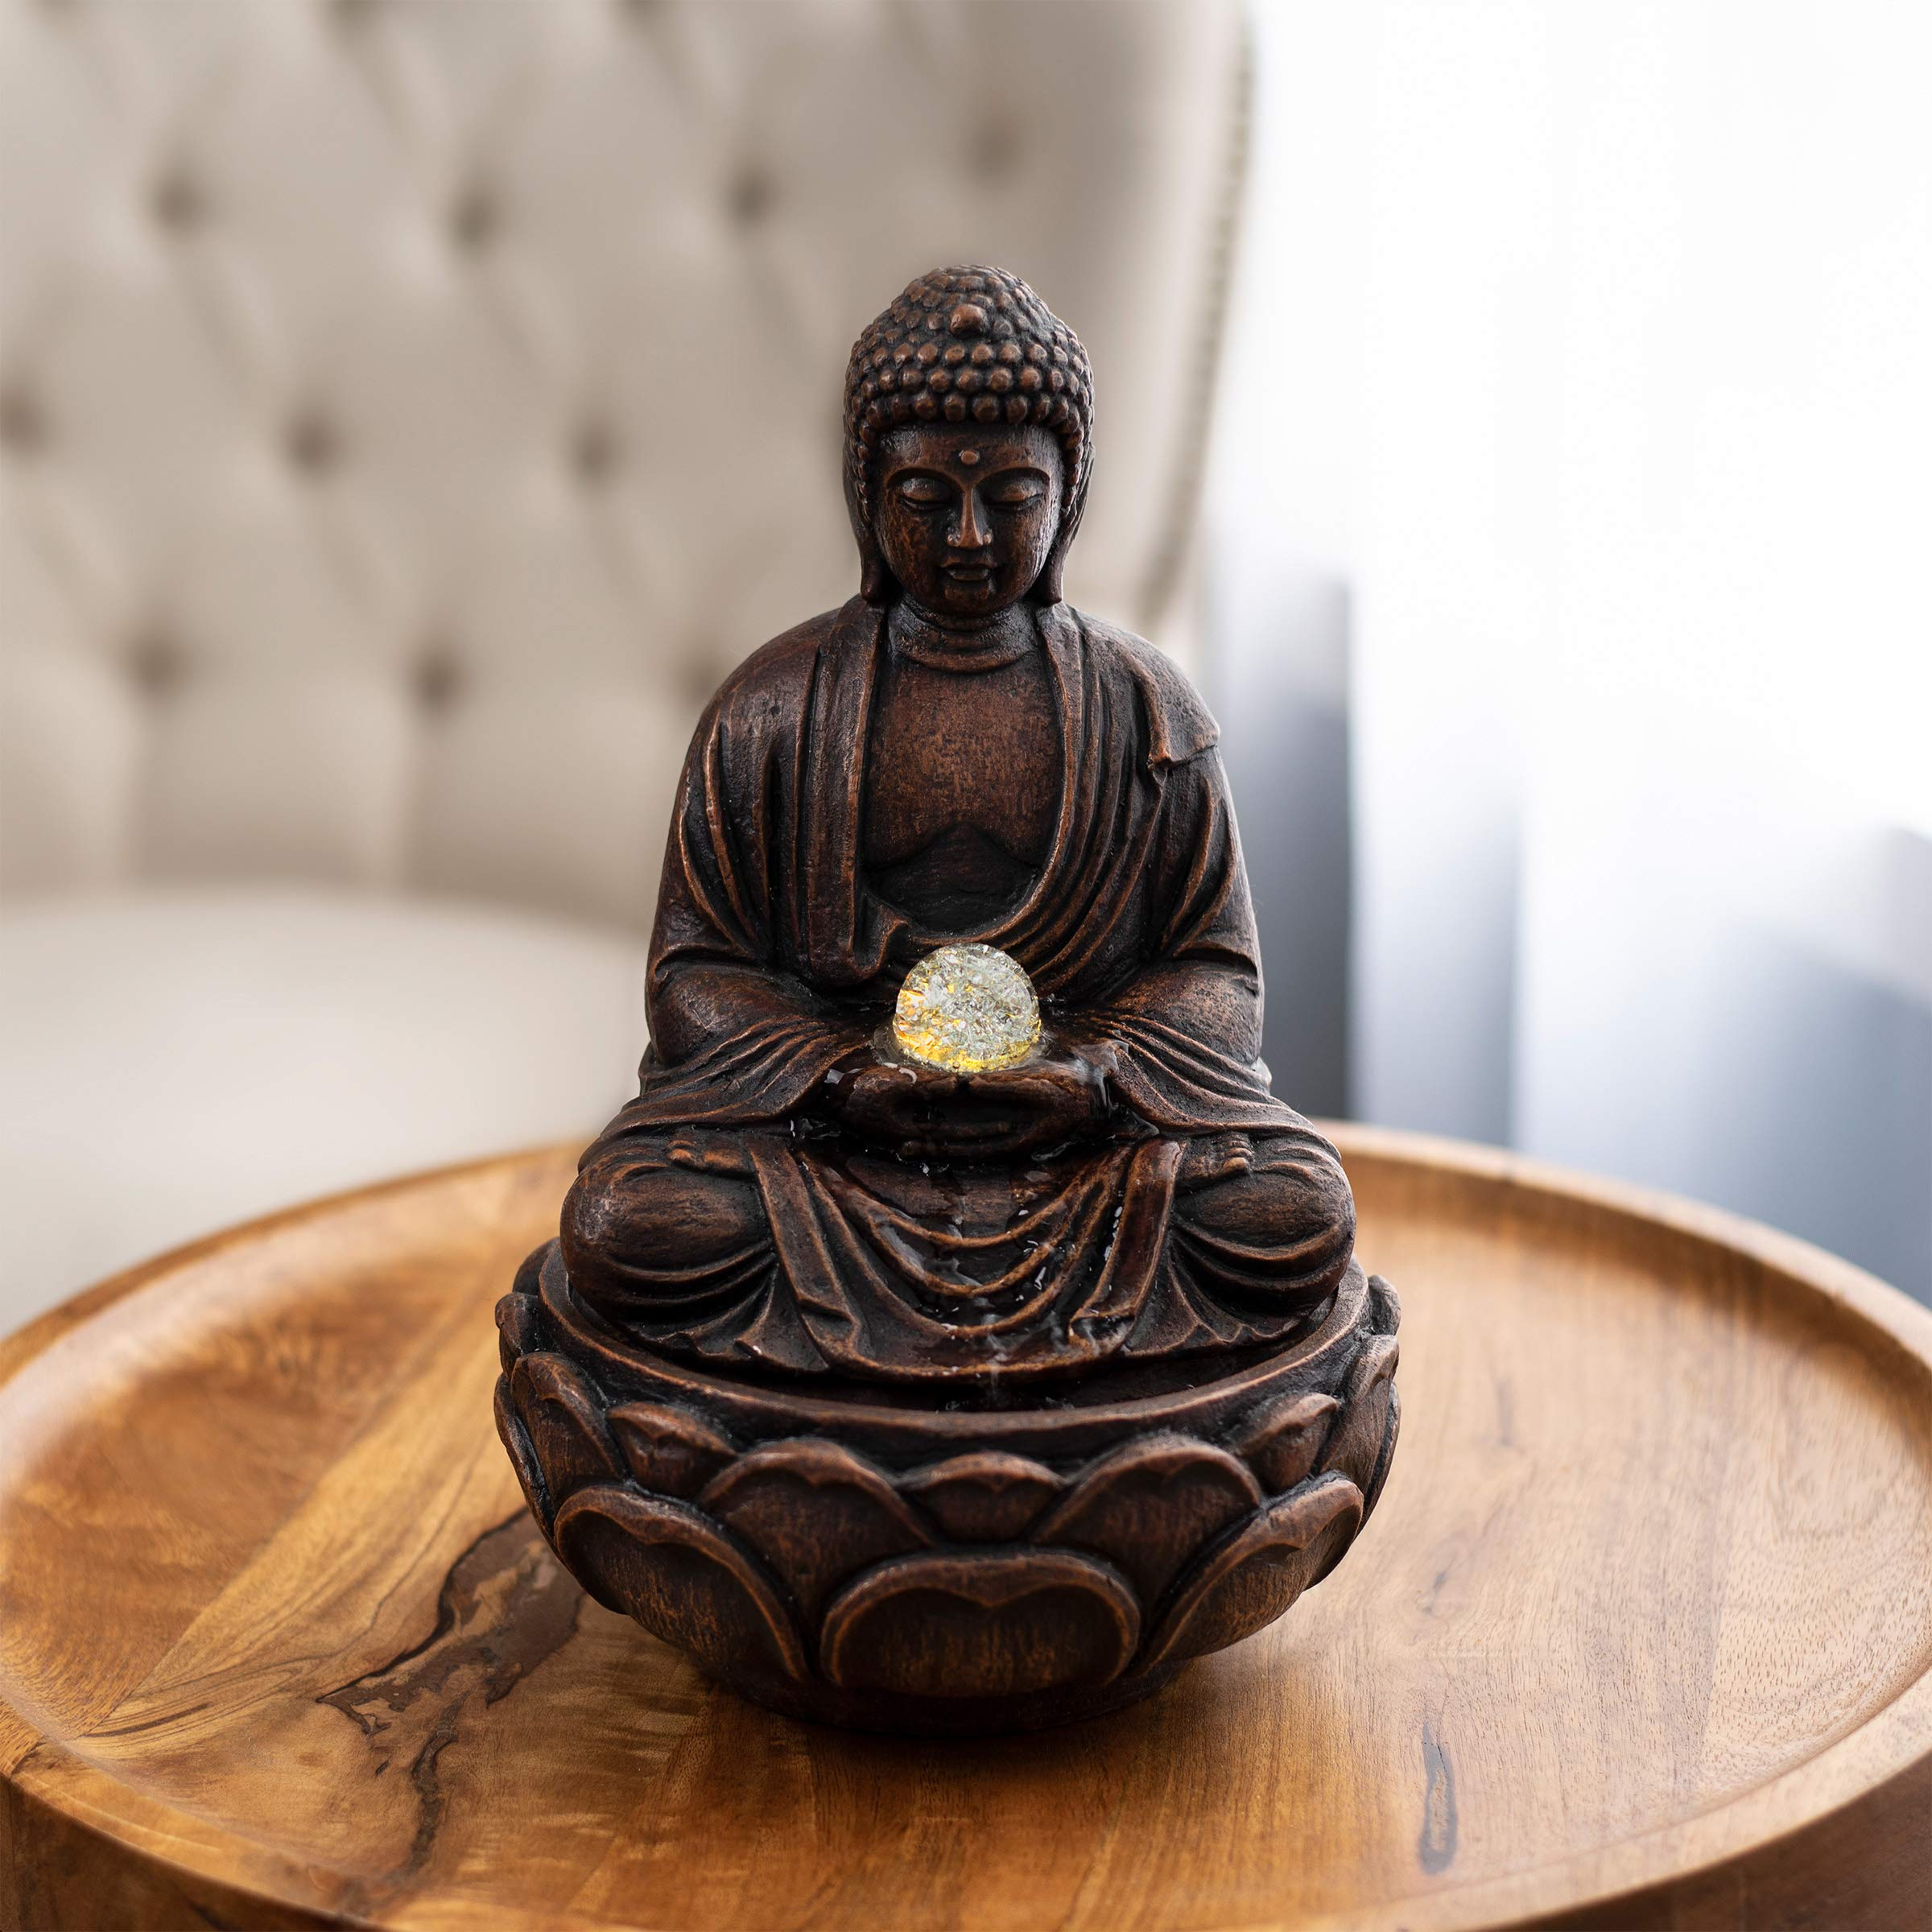 Pure Garden 50-LG5065 Tabletop Water Fountain-Sitting Buddha Statue with Rolling Glass Ball, Multi-Colored LED Lights Electric Pump & Soothing Waterfall